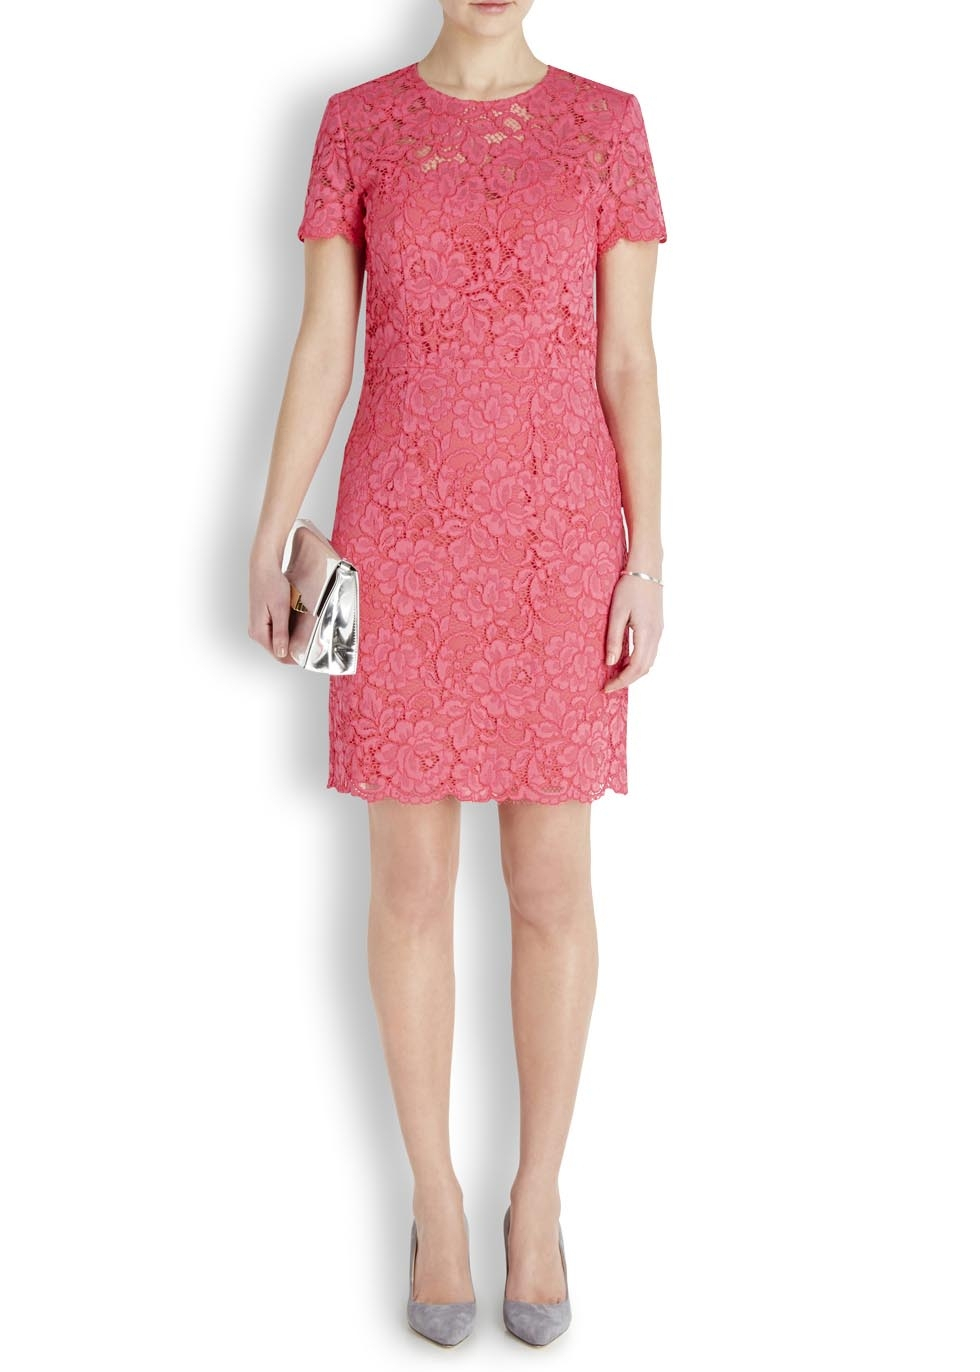 Dkny Bright Pink Lace Dress In Pink Lyst